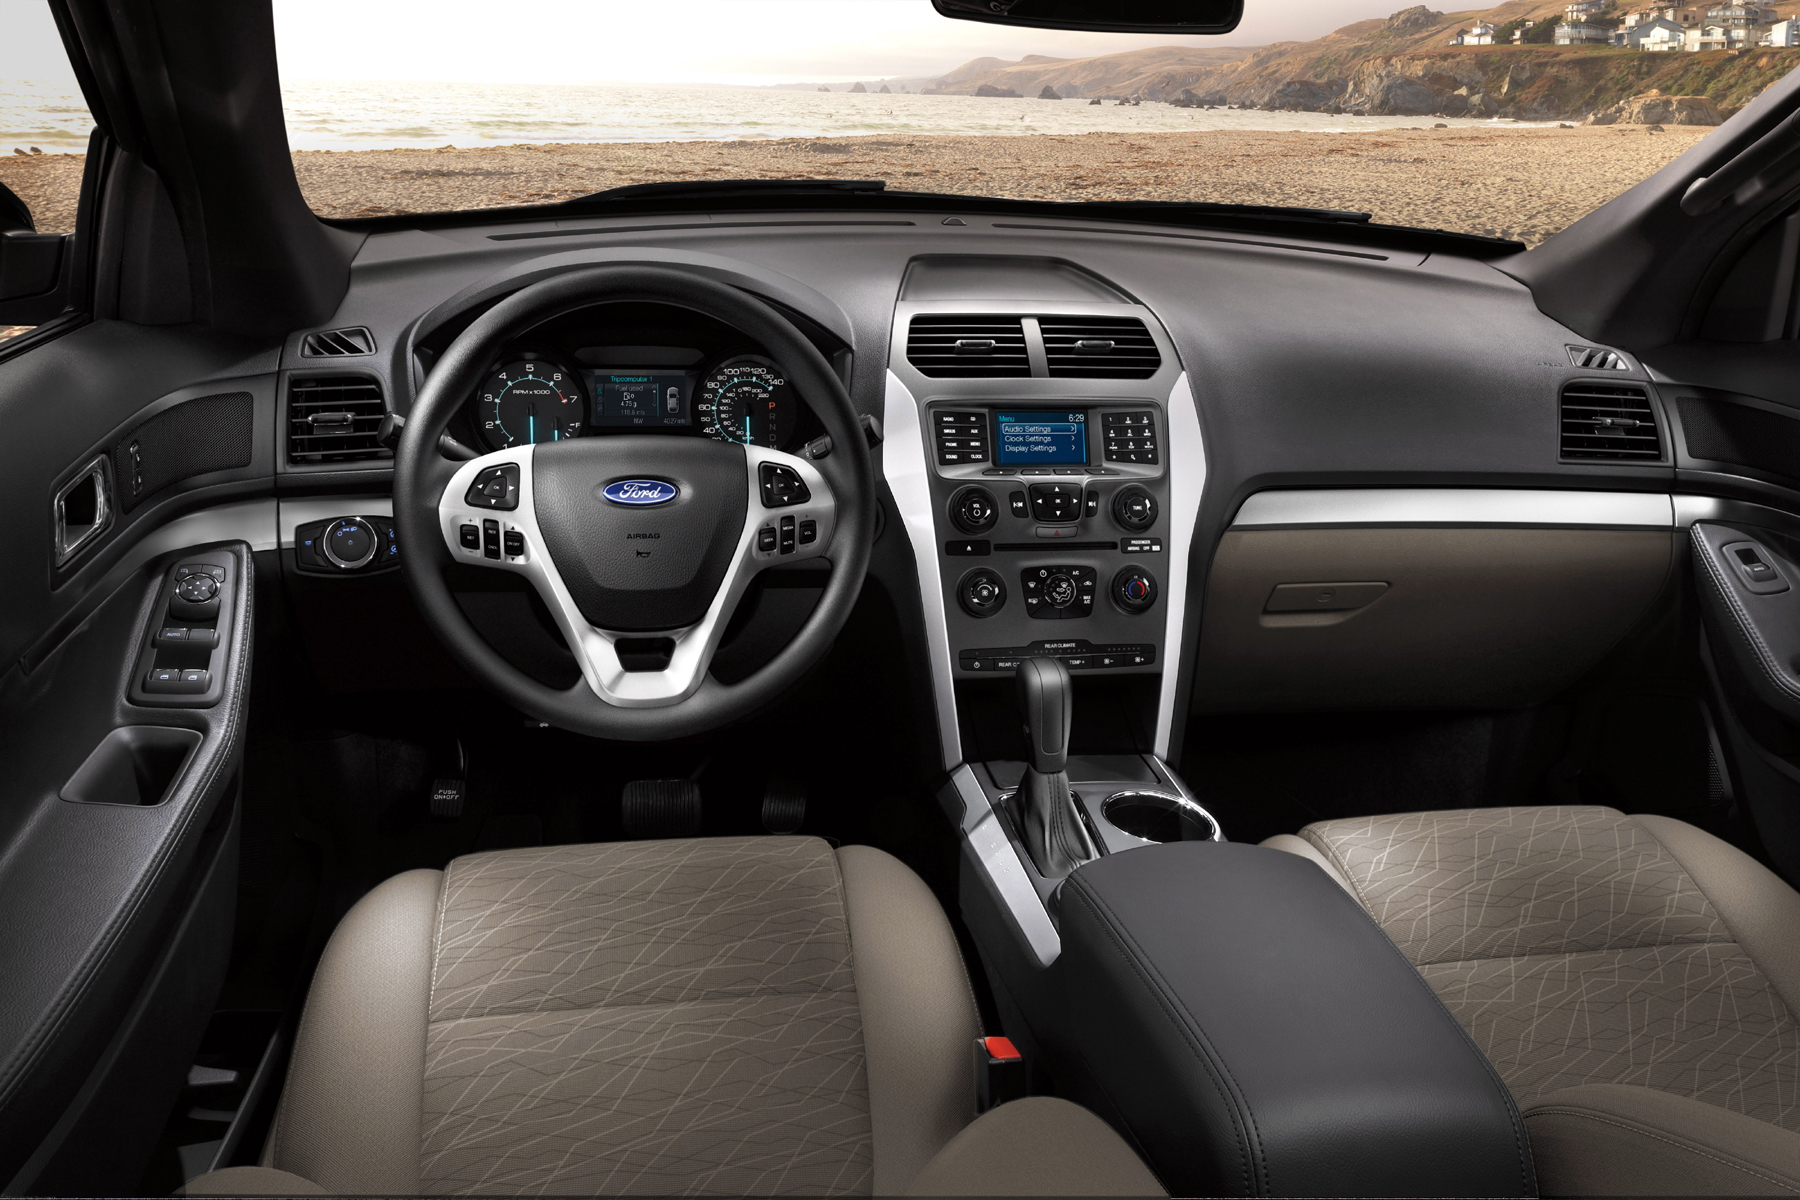 100 Ideas Car And Driver 2016 Ford Explorer On Awesoome & Car And Driver Ford Explorer - The Best Driver In 2017 markmcfarlin.com